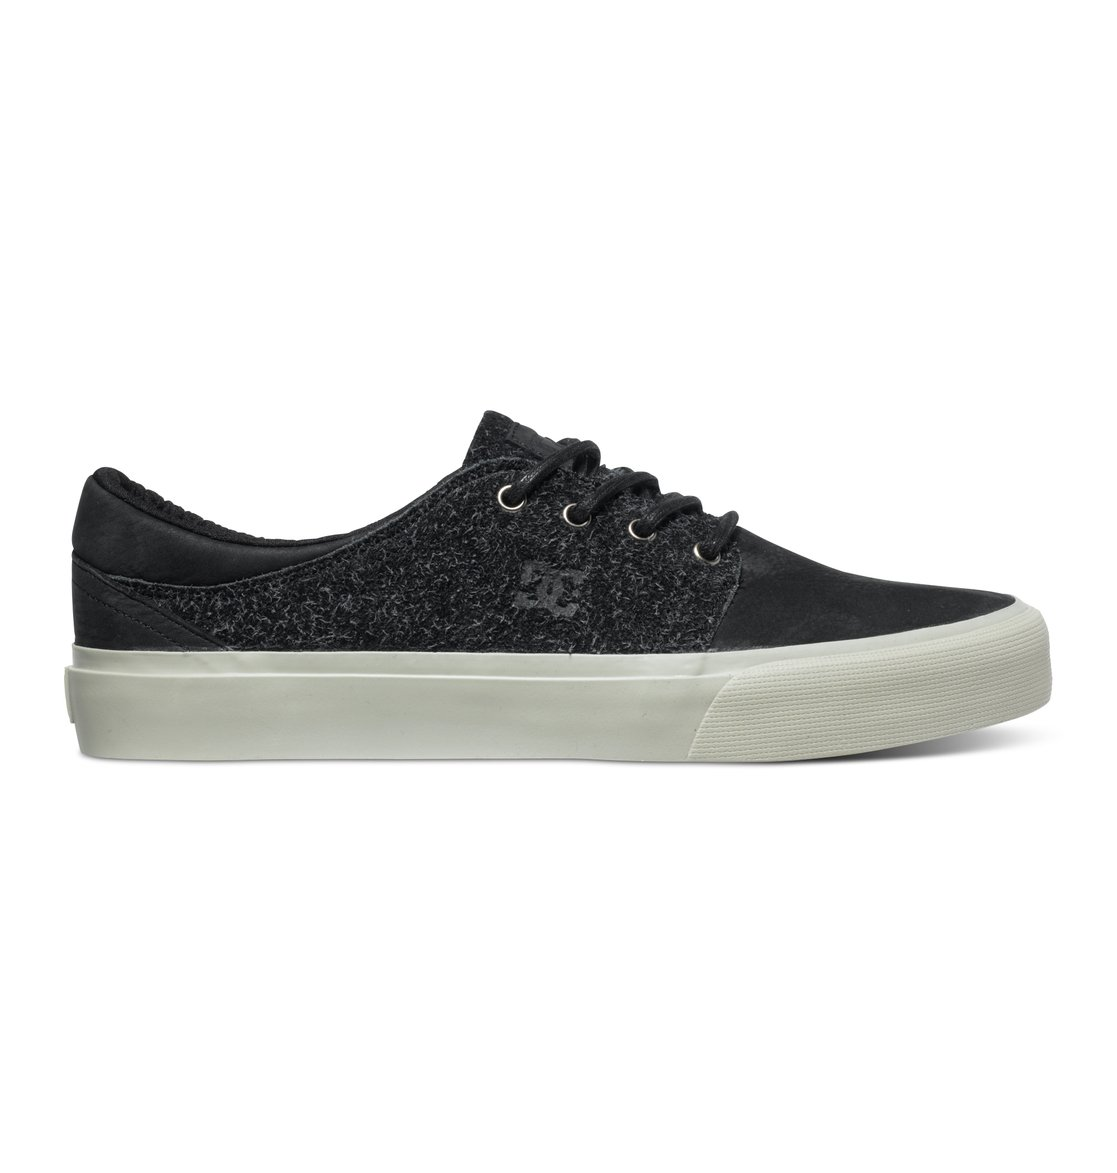 Trase LX - Low-Top Shoes - Dcshoes<br>